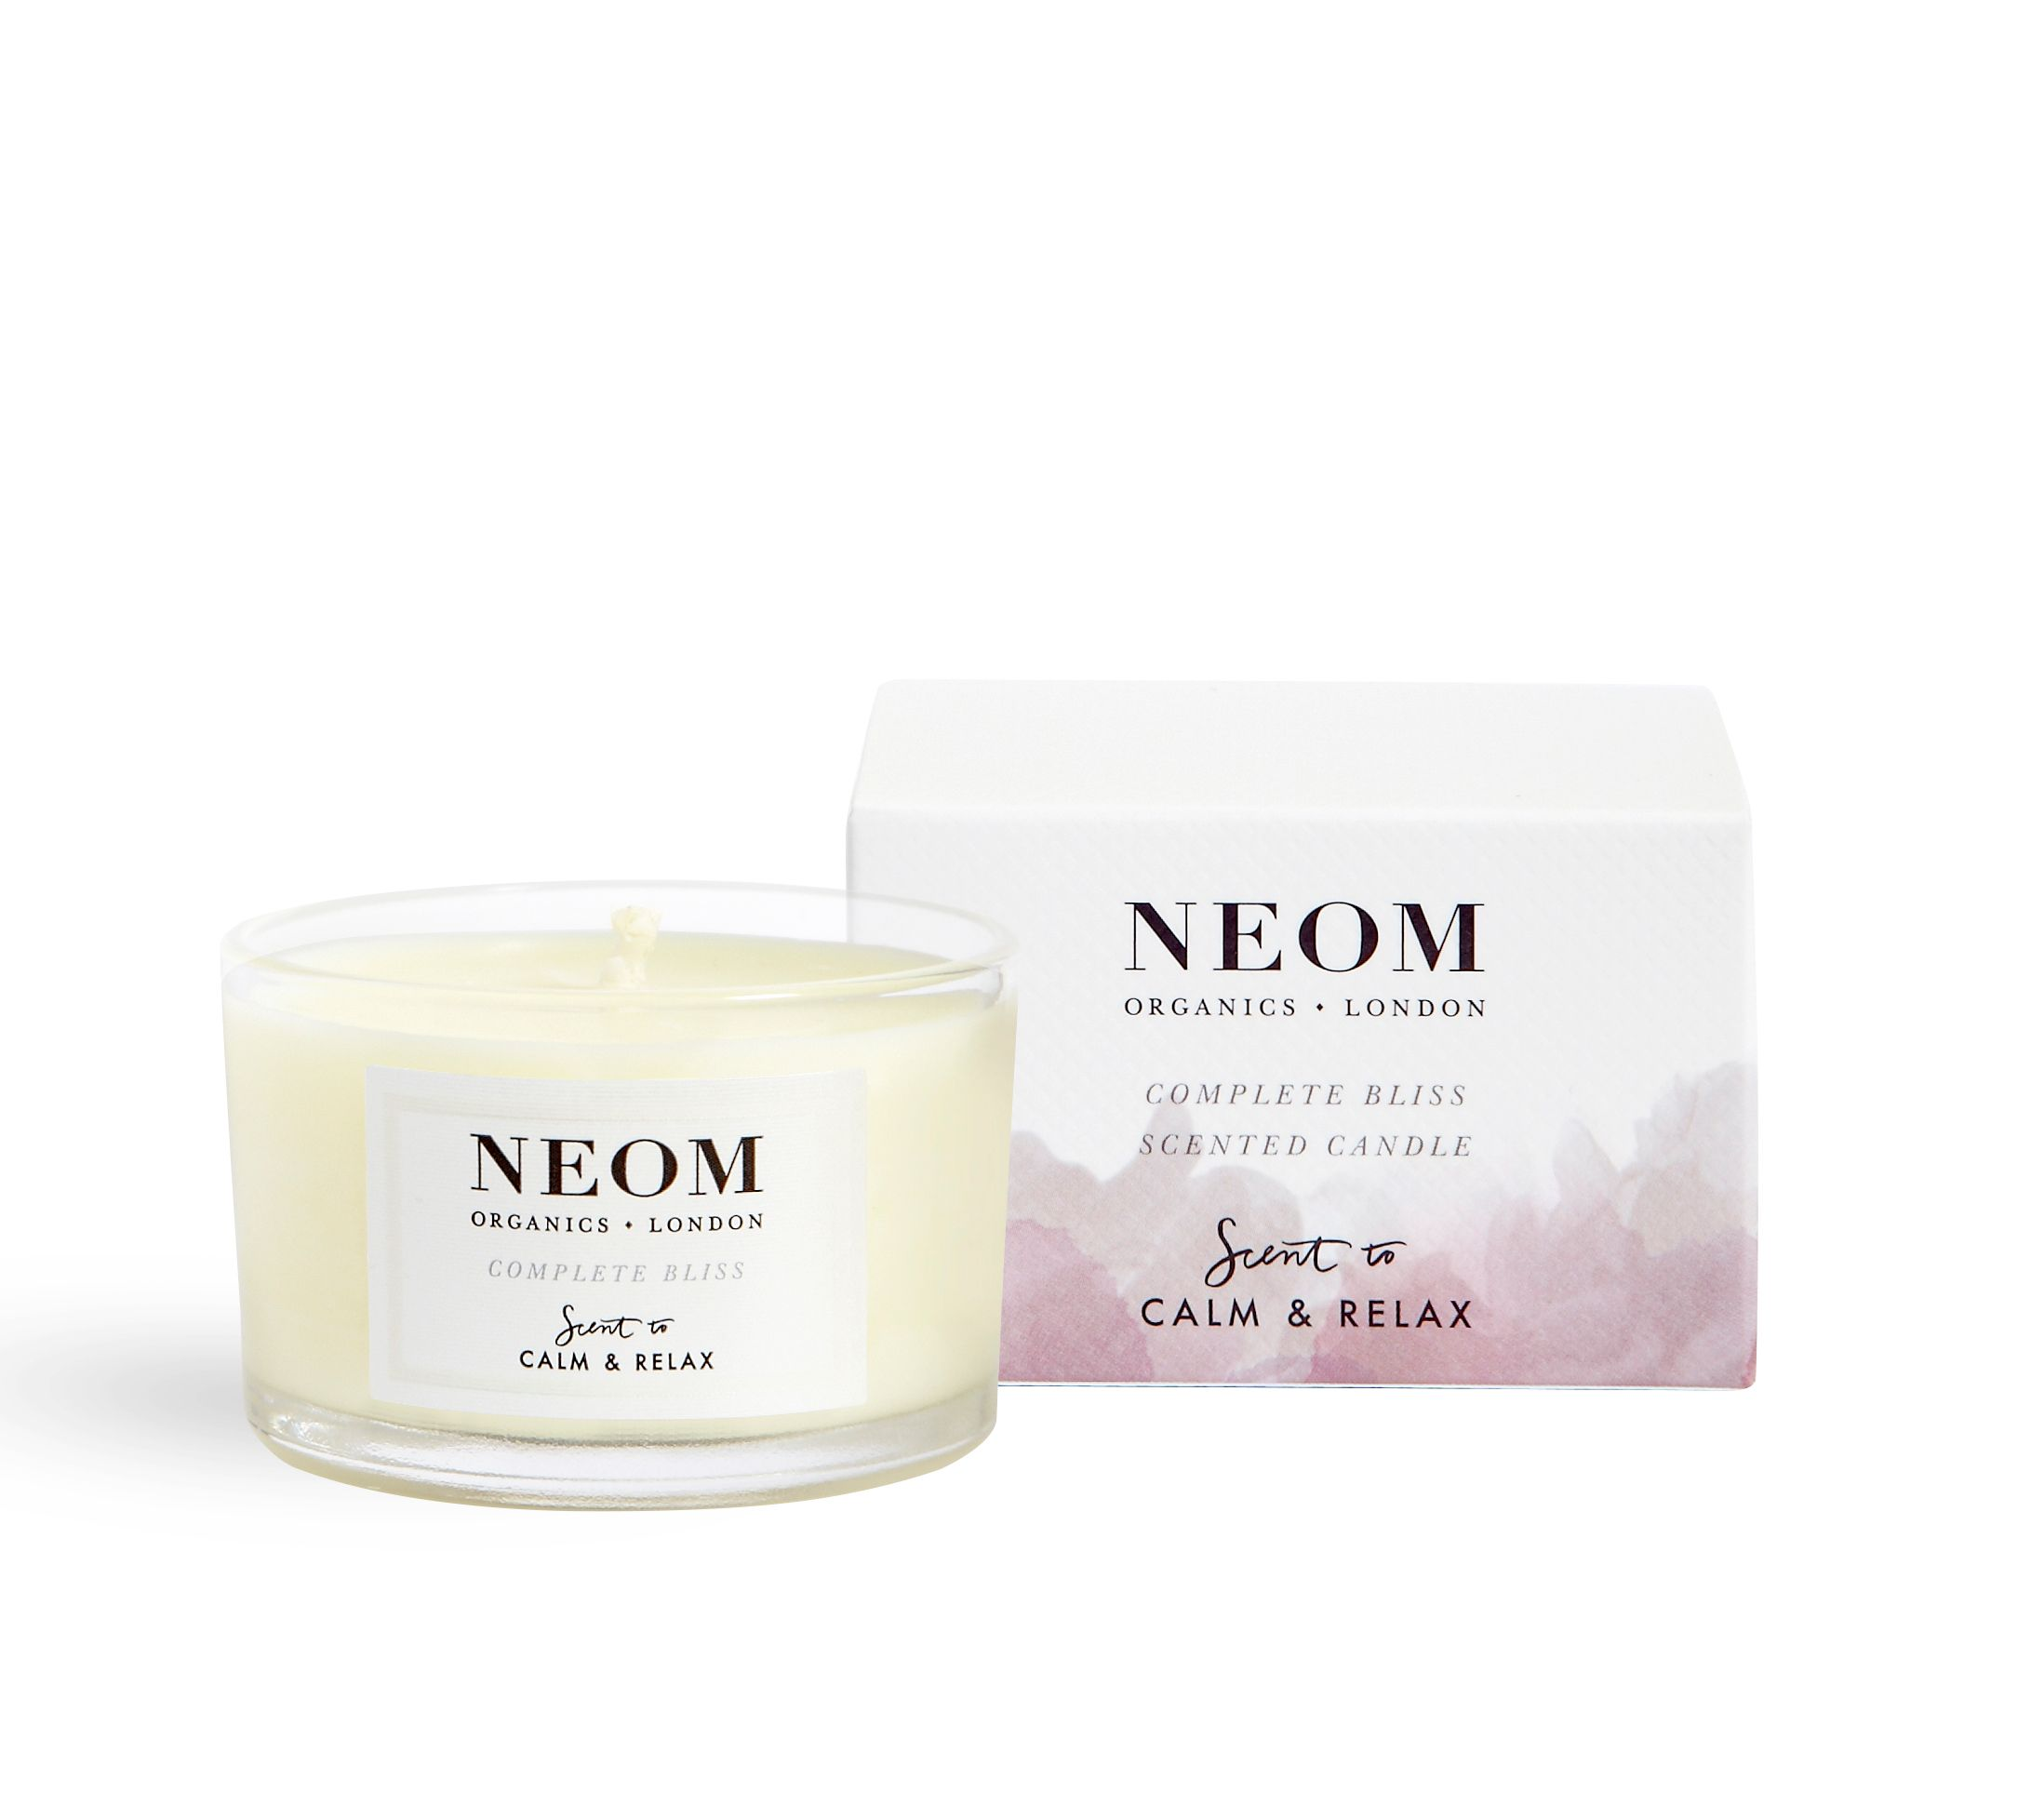 Image of Neom Complete Bliss Scented Travel Candle 75g